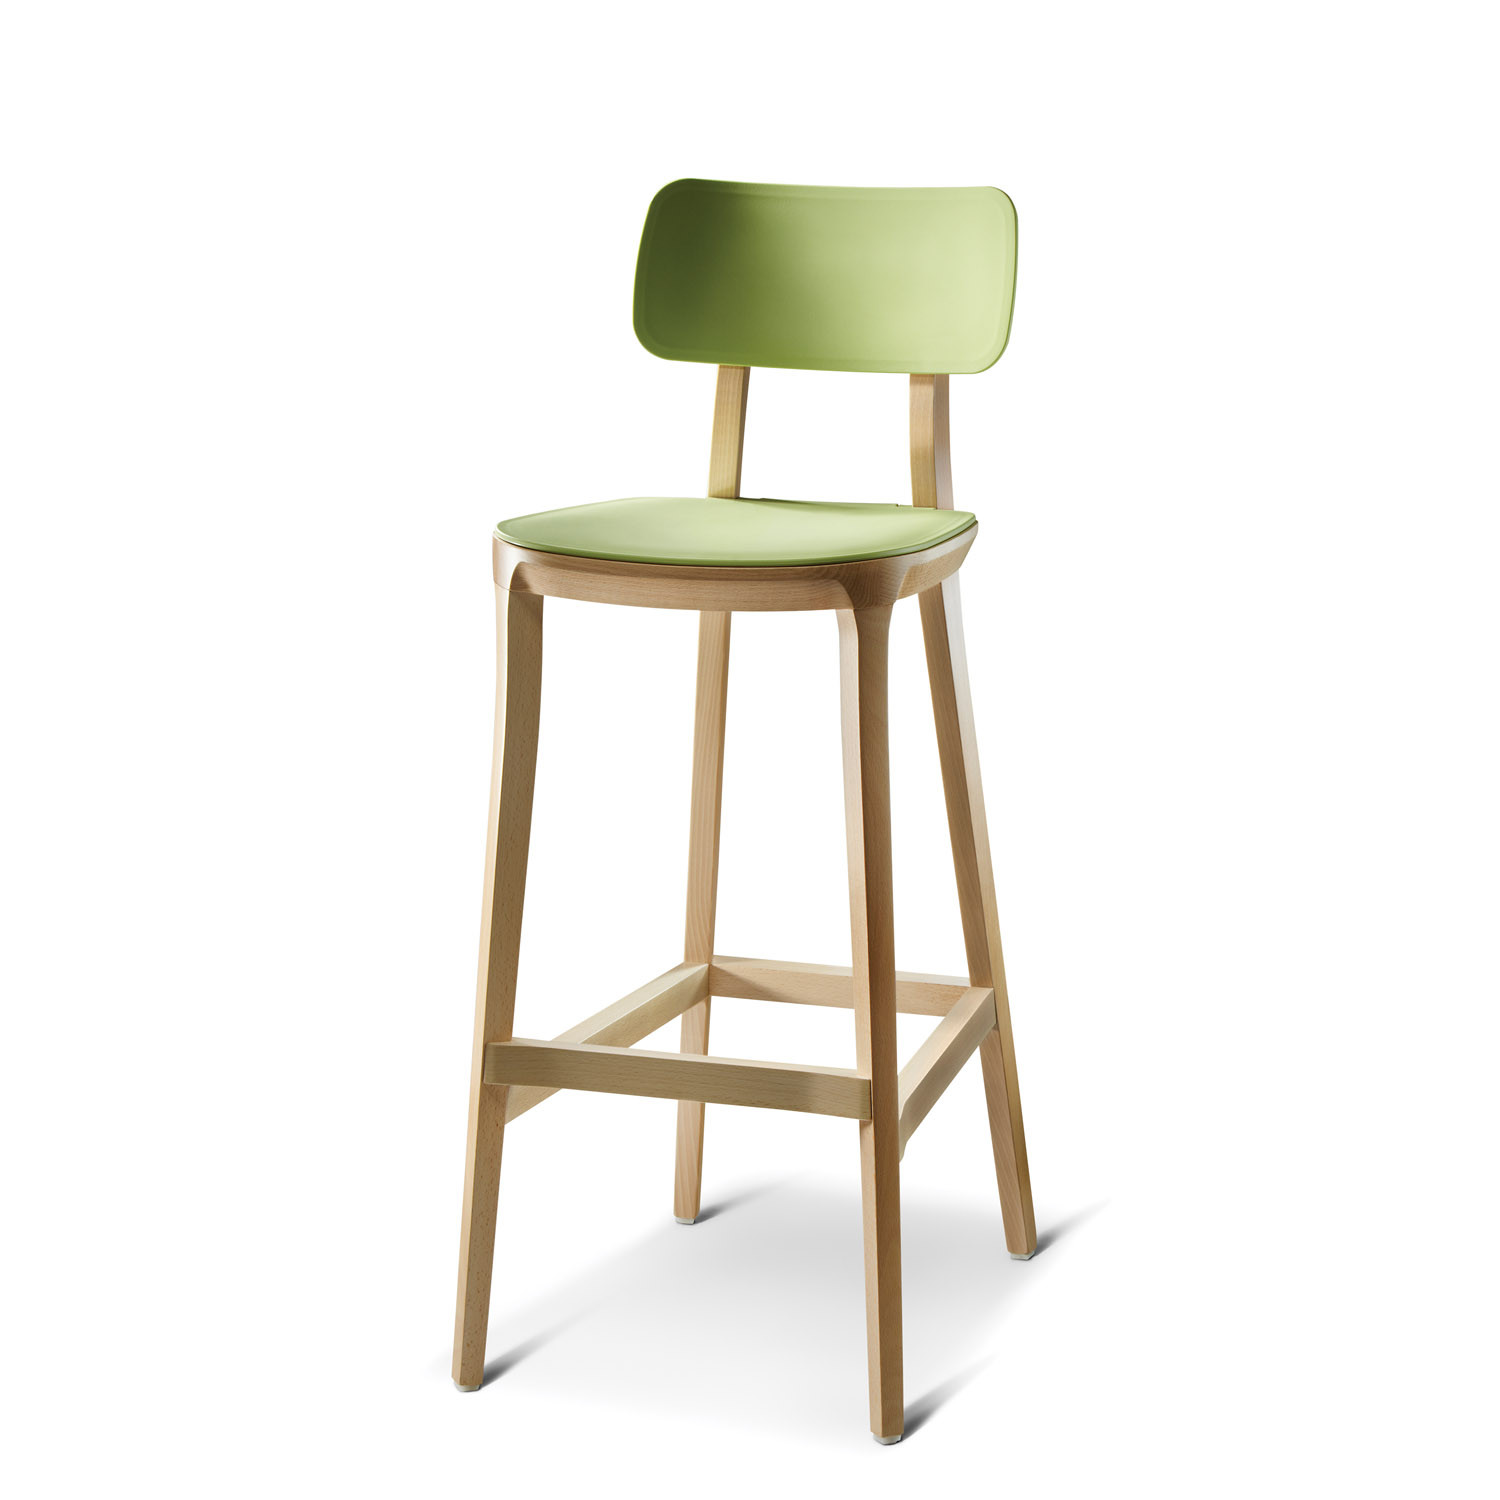 Retro Kitchen Bar Stools Retro Bar Stool Grt1 Solid Wooden Bar Stools Apres Furniture